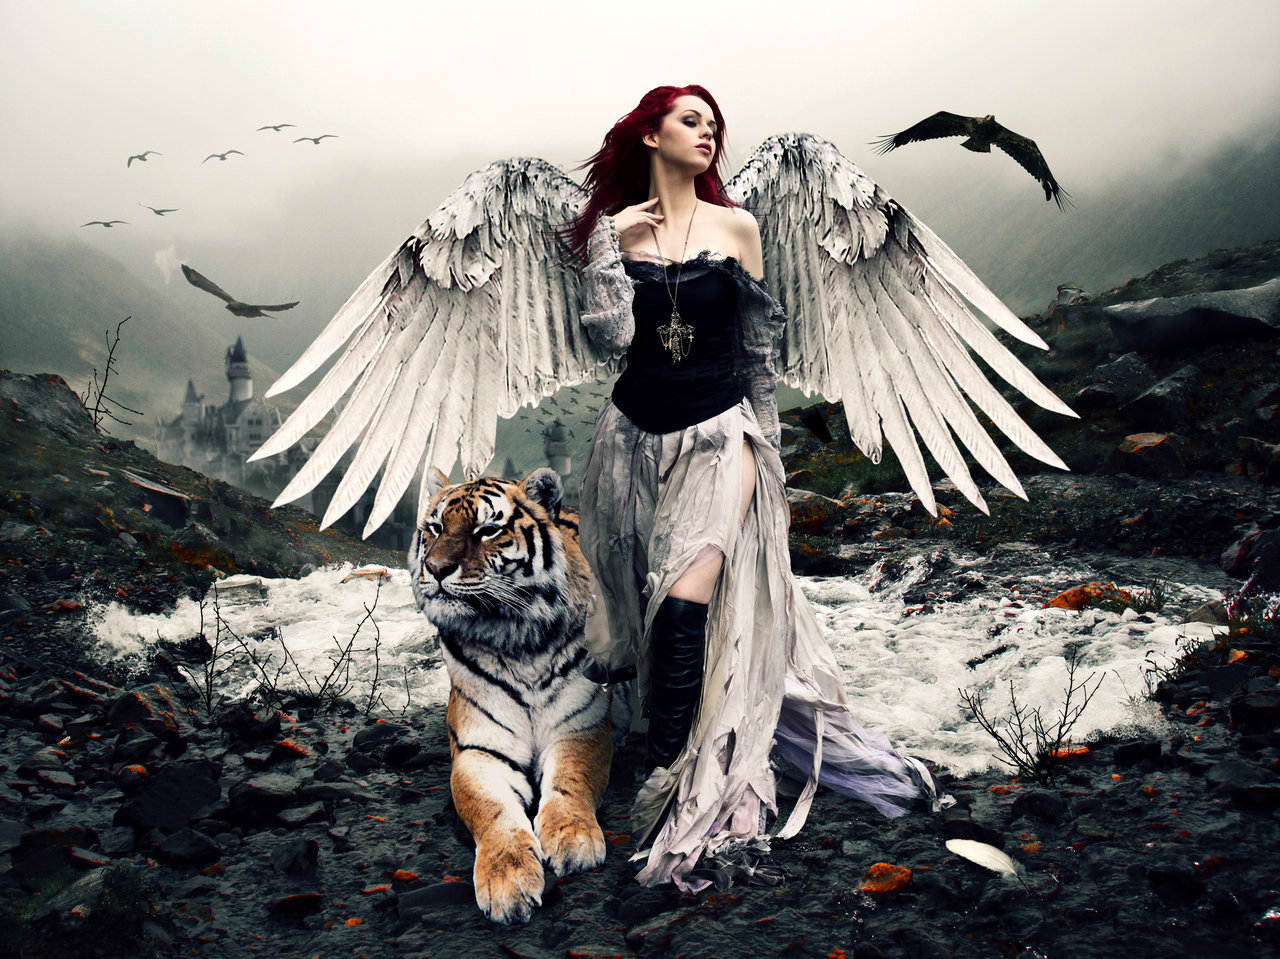 Download mobile wallpaper Animals, People, Girls, Fantasy, Angels, Tigers for free.